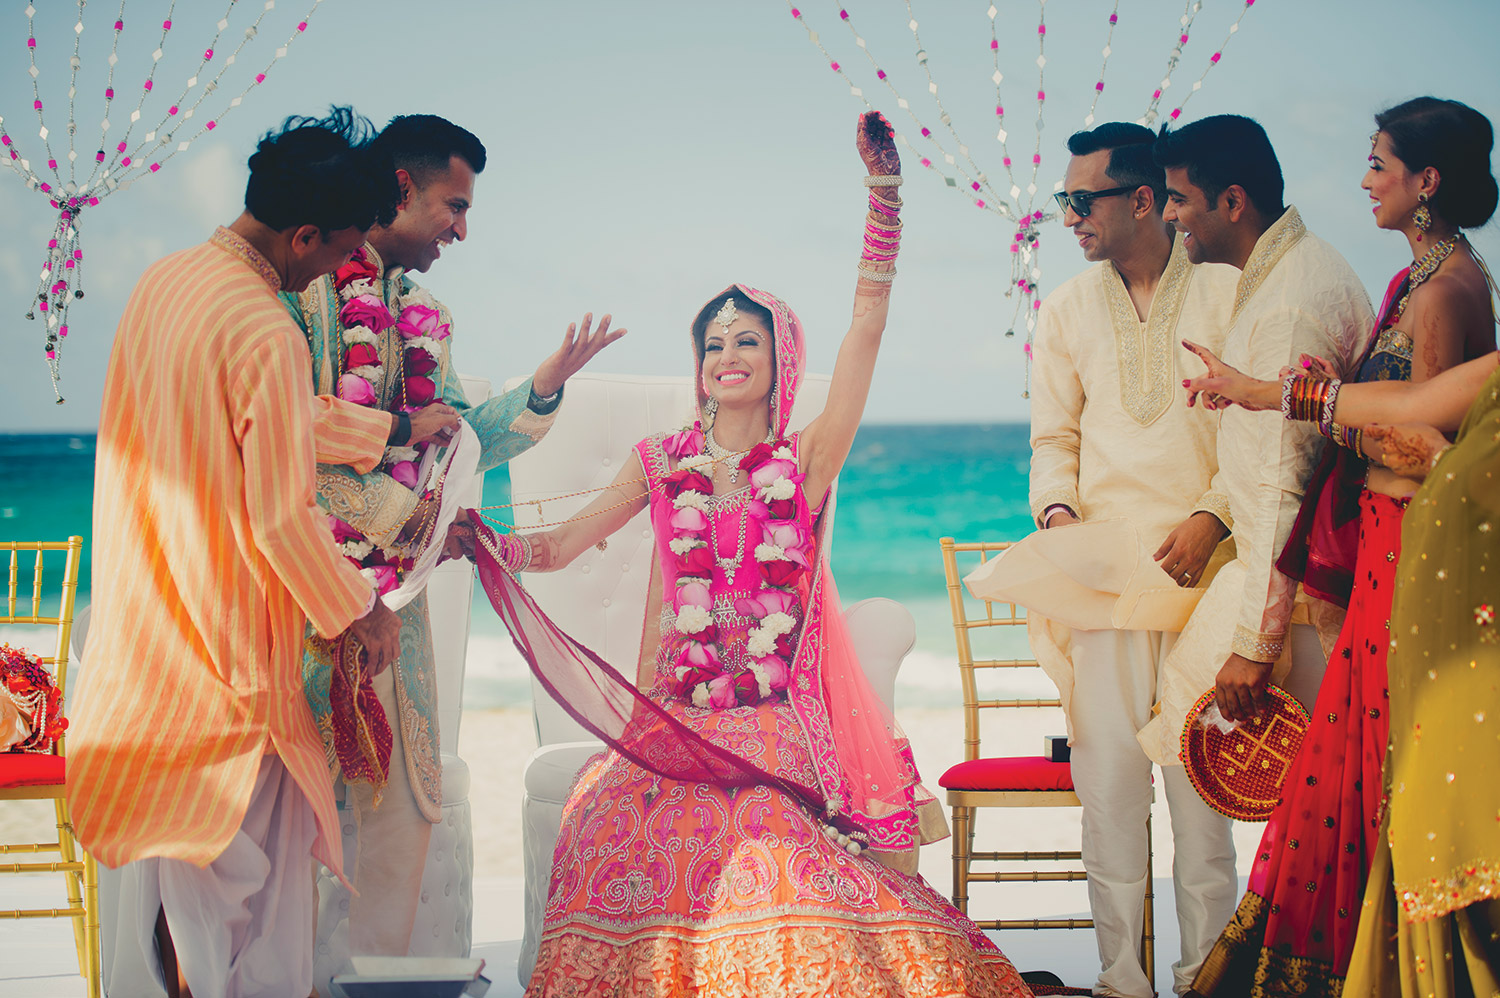 Hard Rock Hotels WOW Clients with Destination Indian Wedding